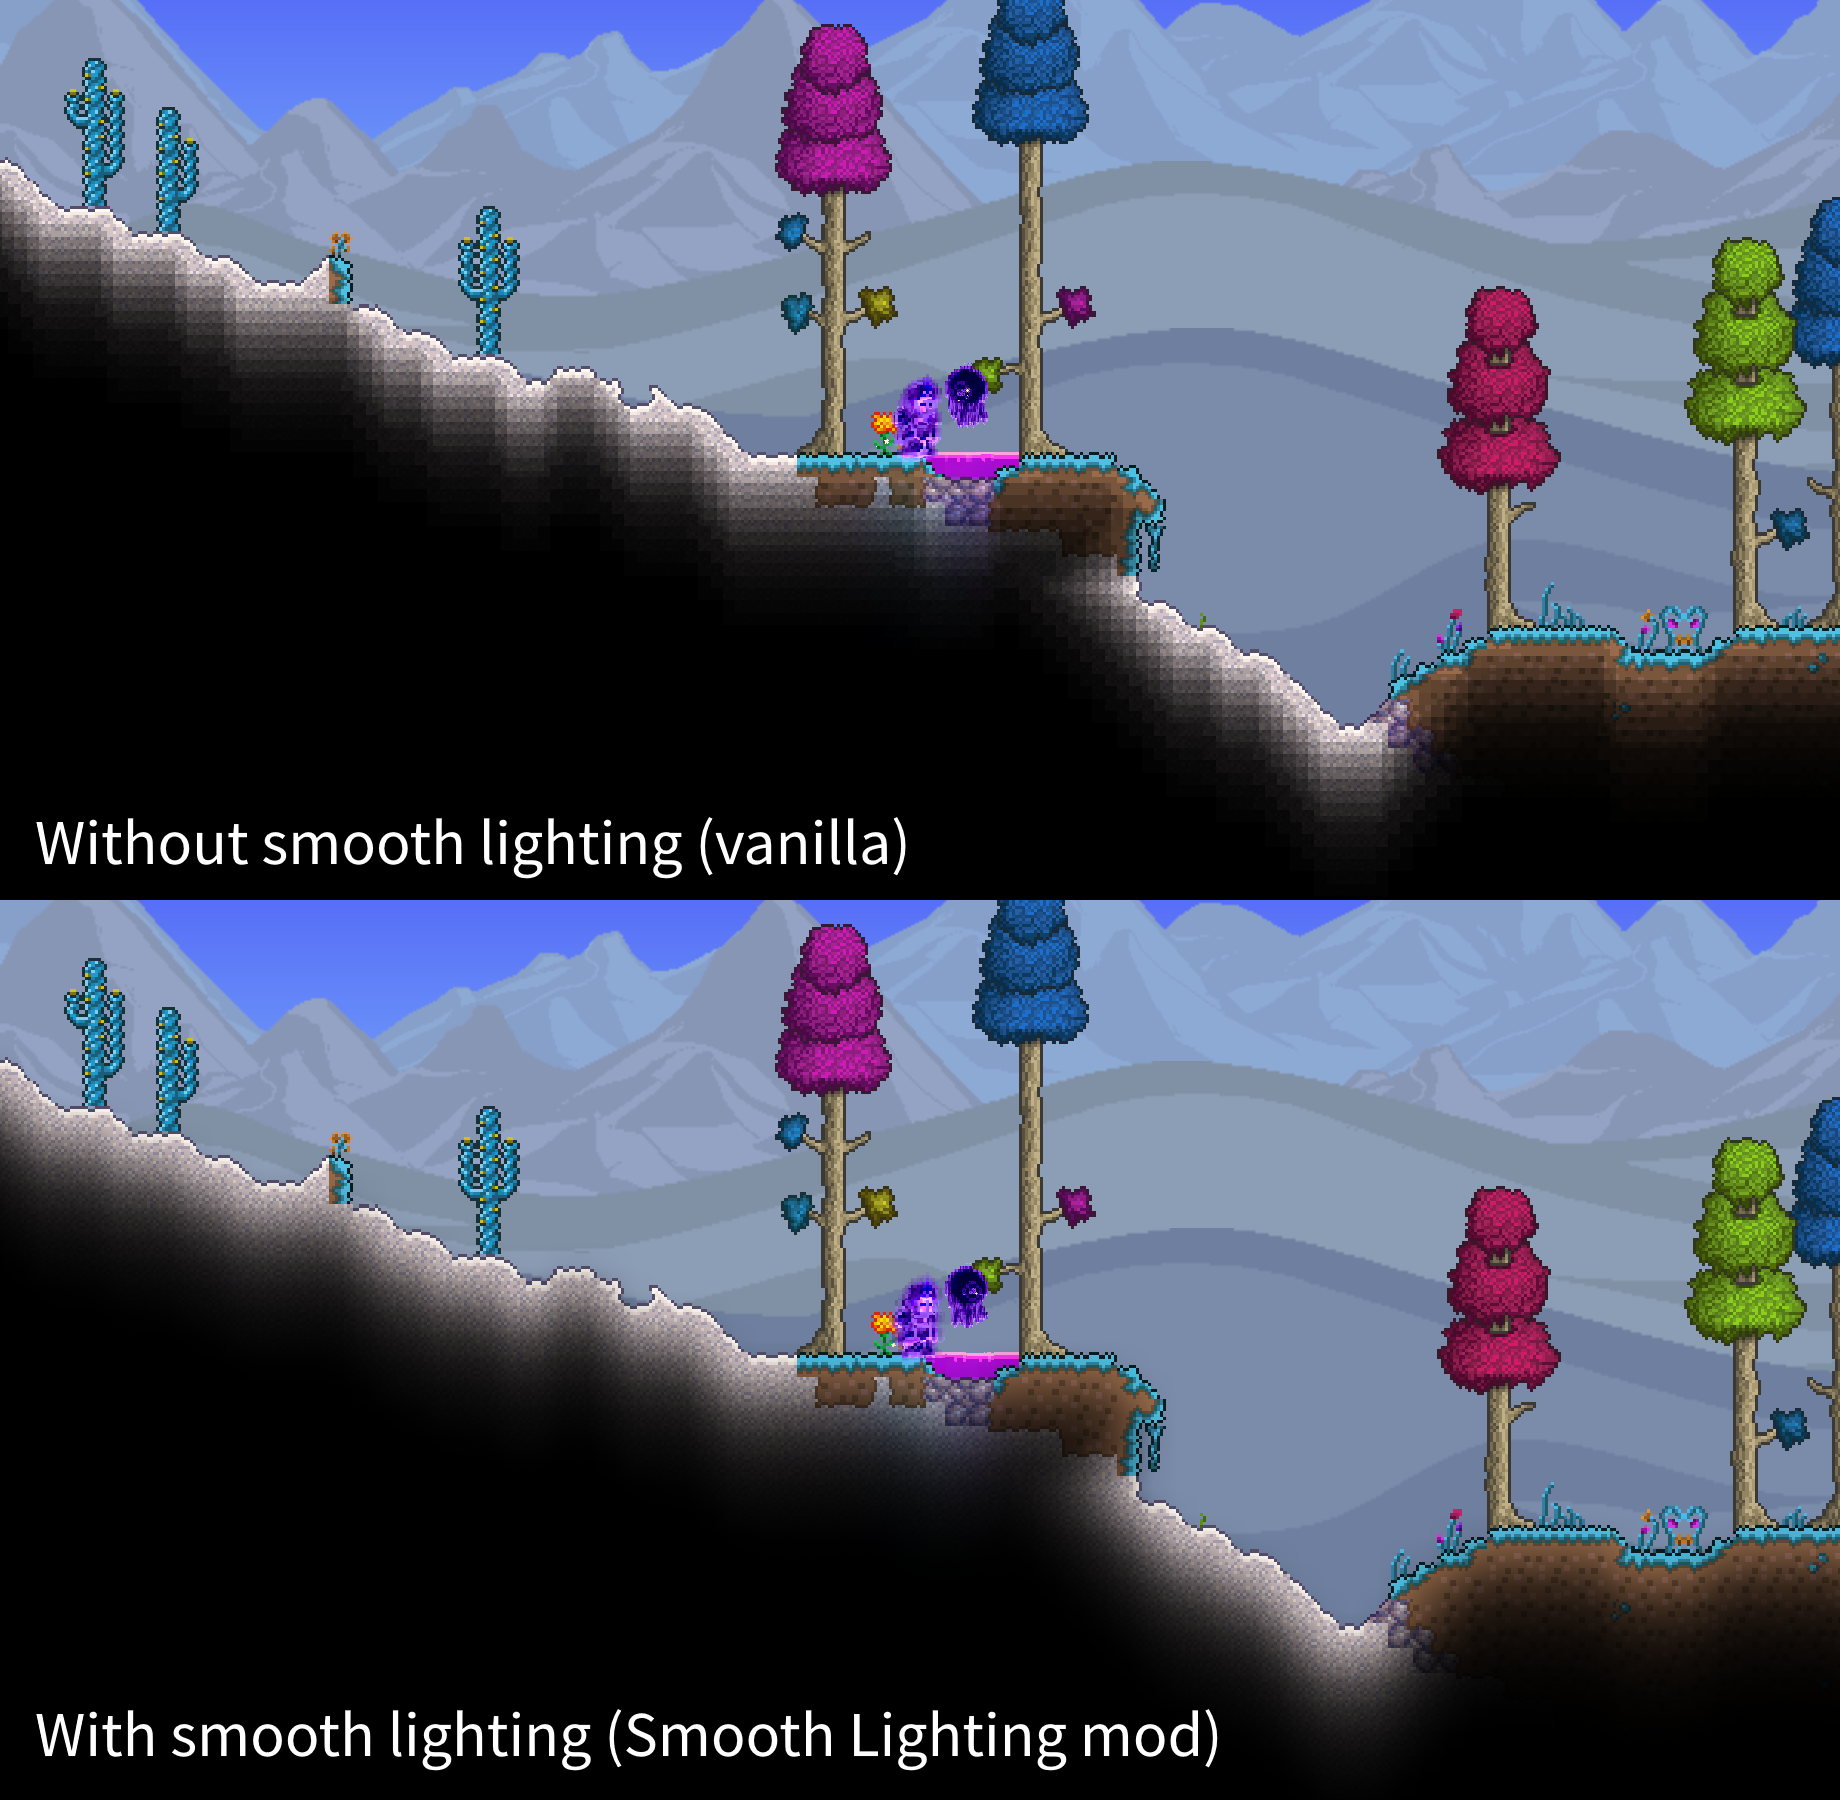 SmoothLightingMod.png